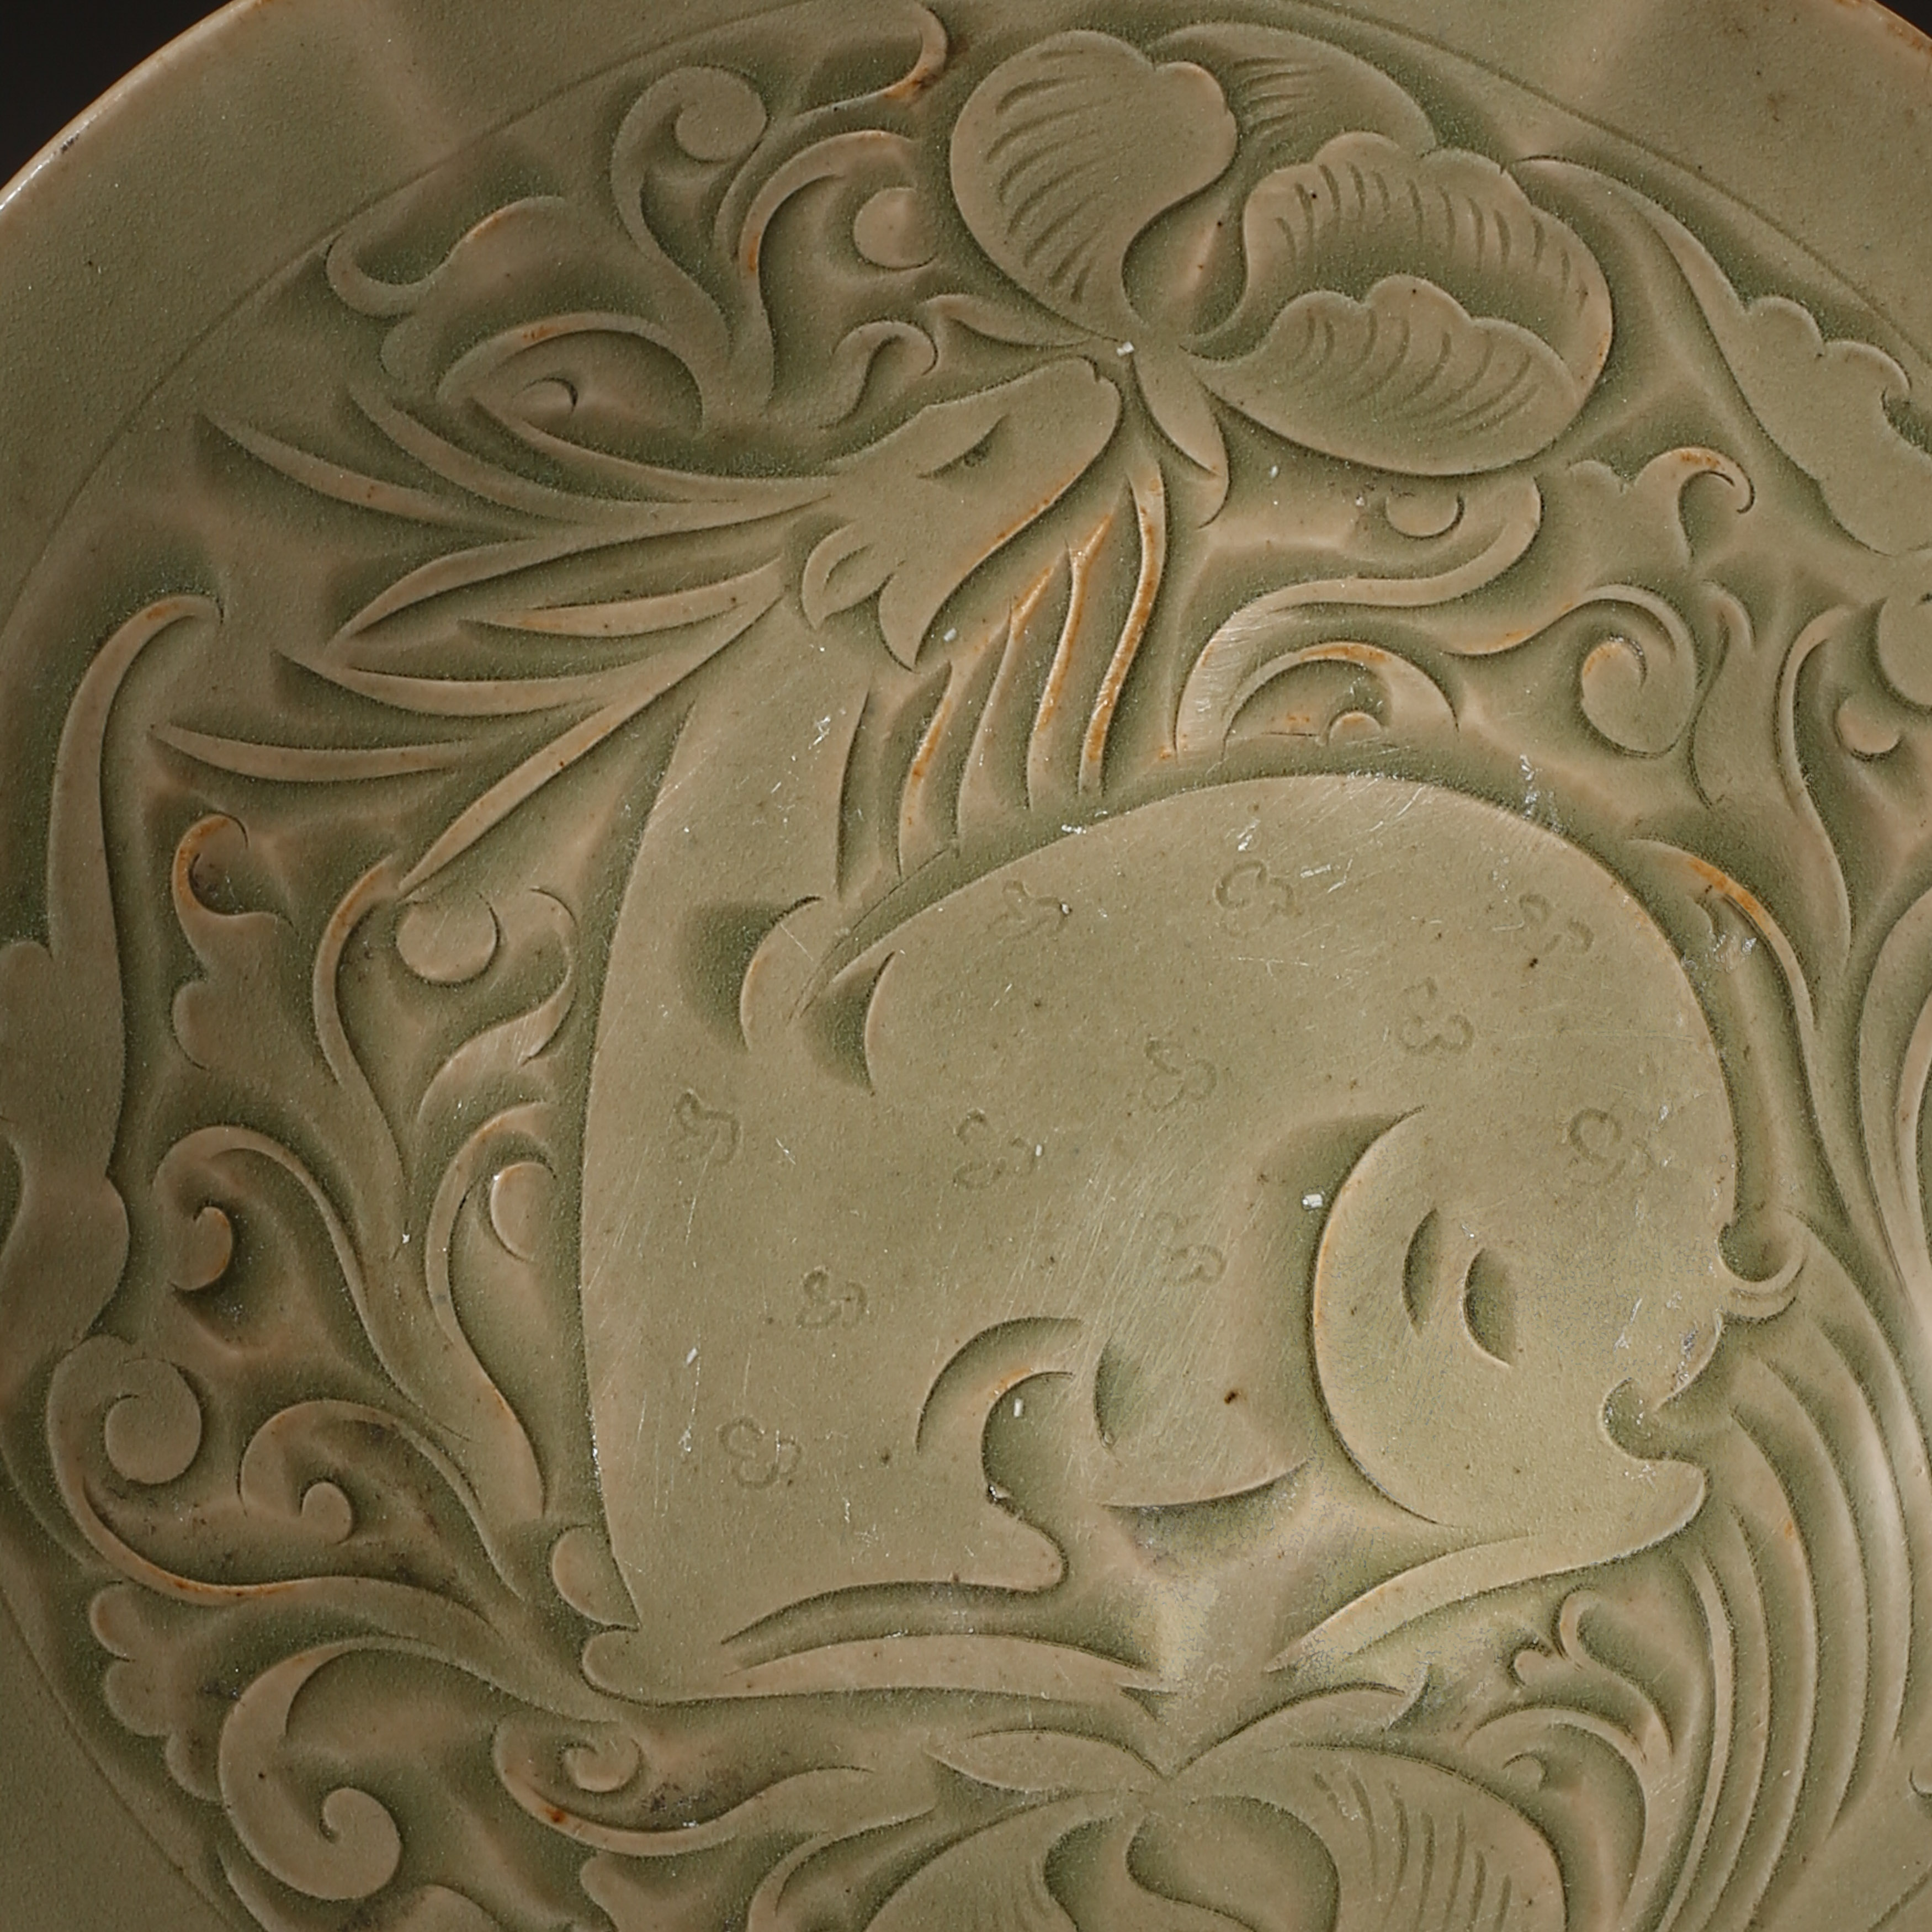 YAOZHOU KILN PLATE WITH RAFFITO DESIGN, NORTHERN SONG DYNASTY, CHINA - Image 2 of 9